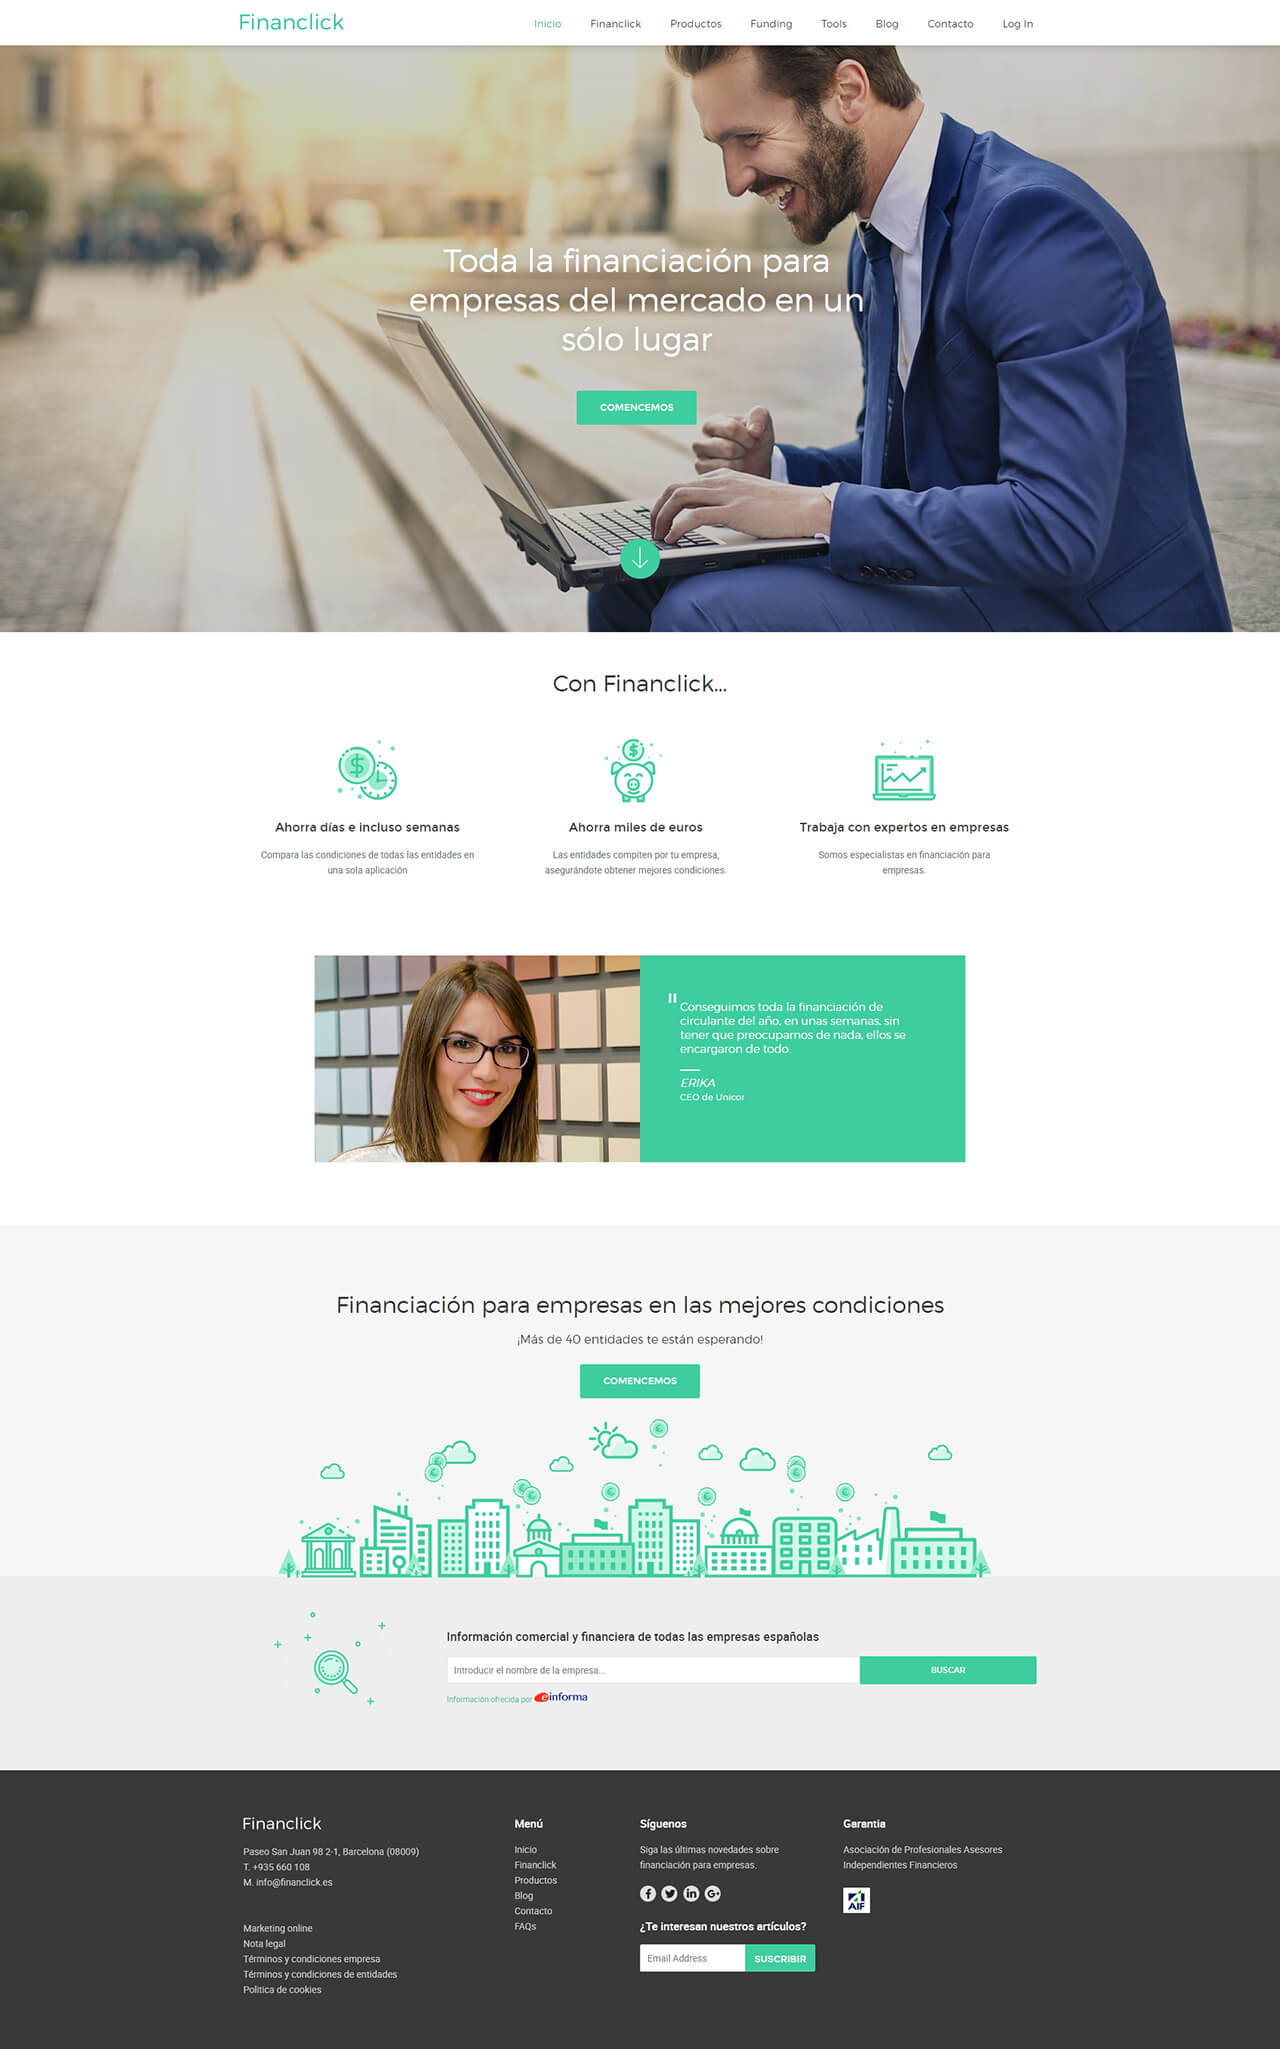 web design financlick